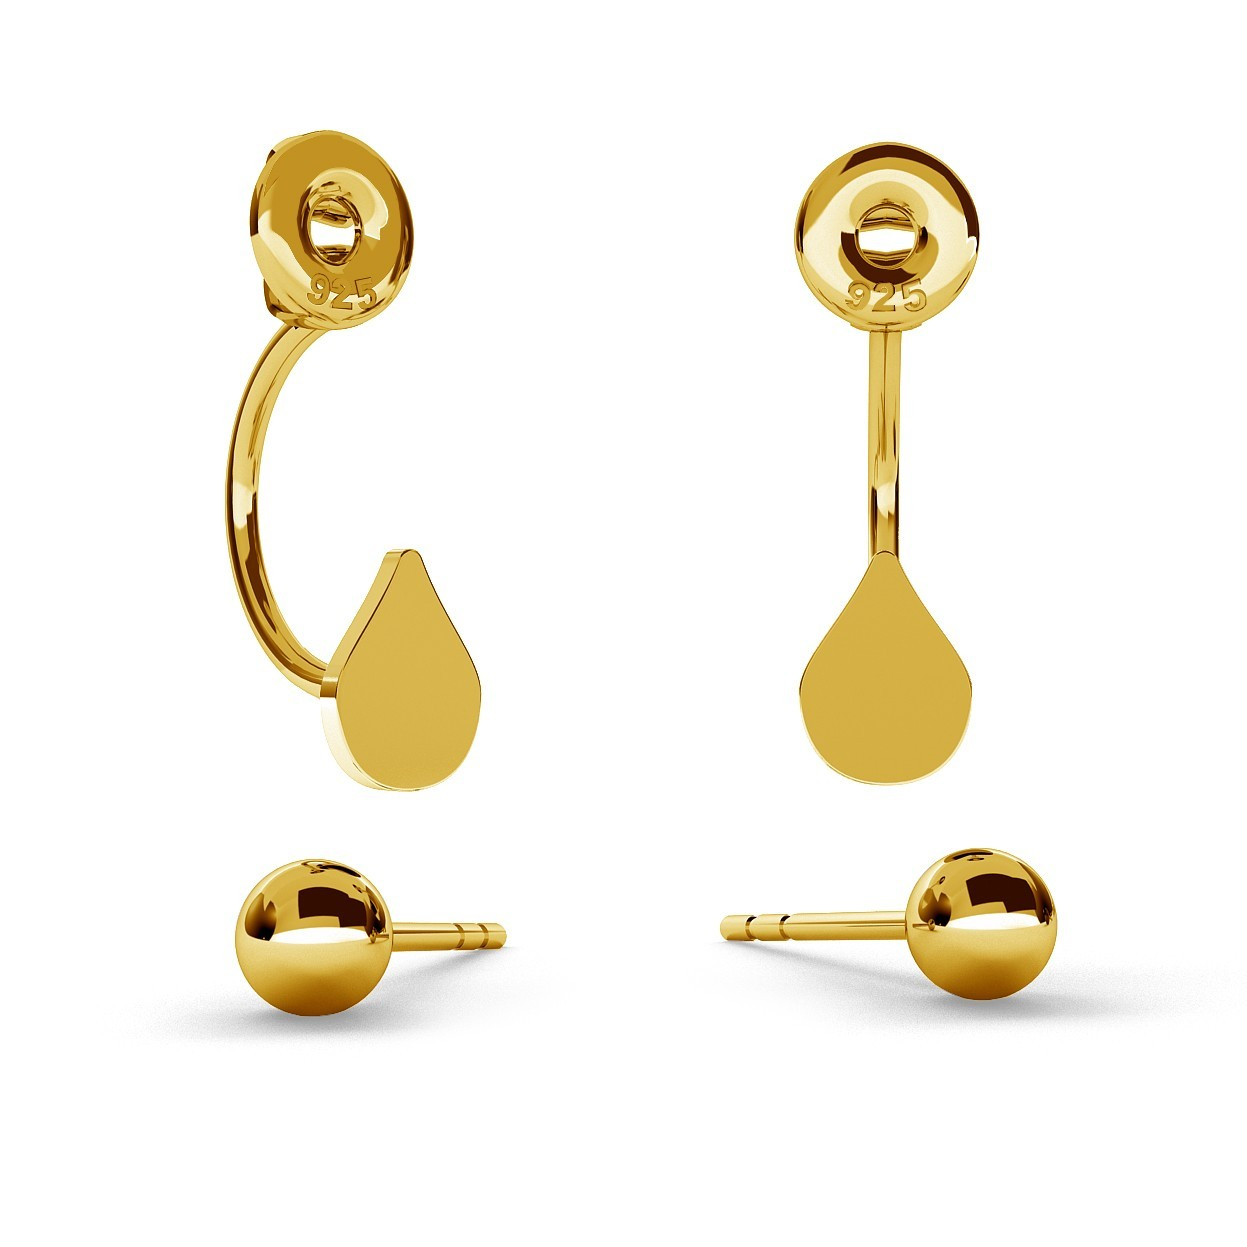 SWING EARRINGS BALL & TEAR WITH ENGRAVE